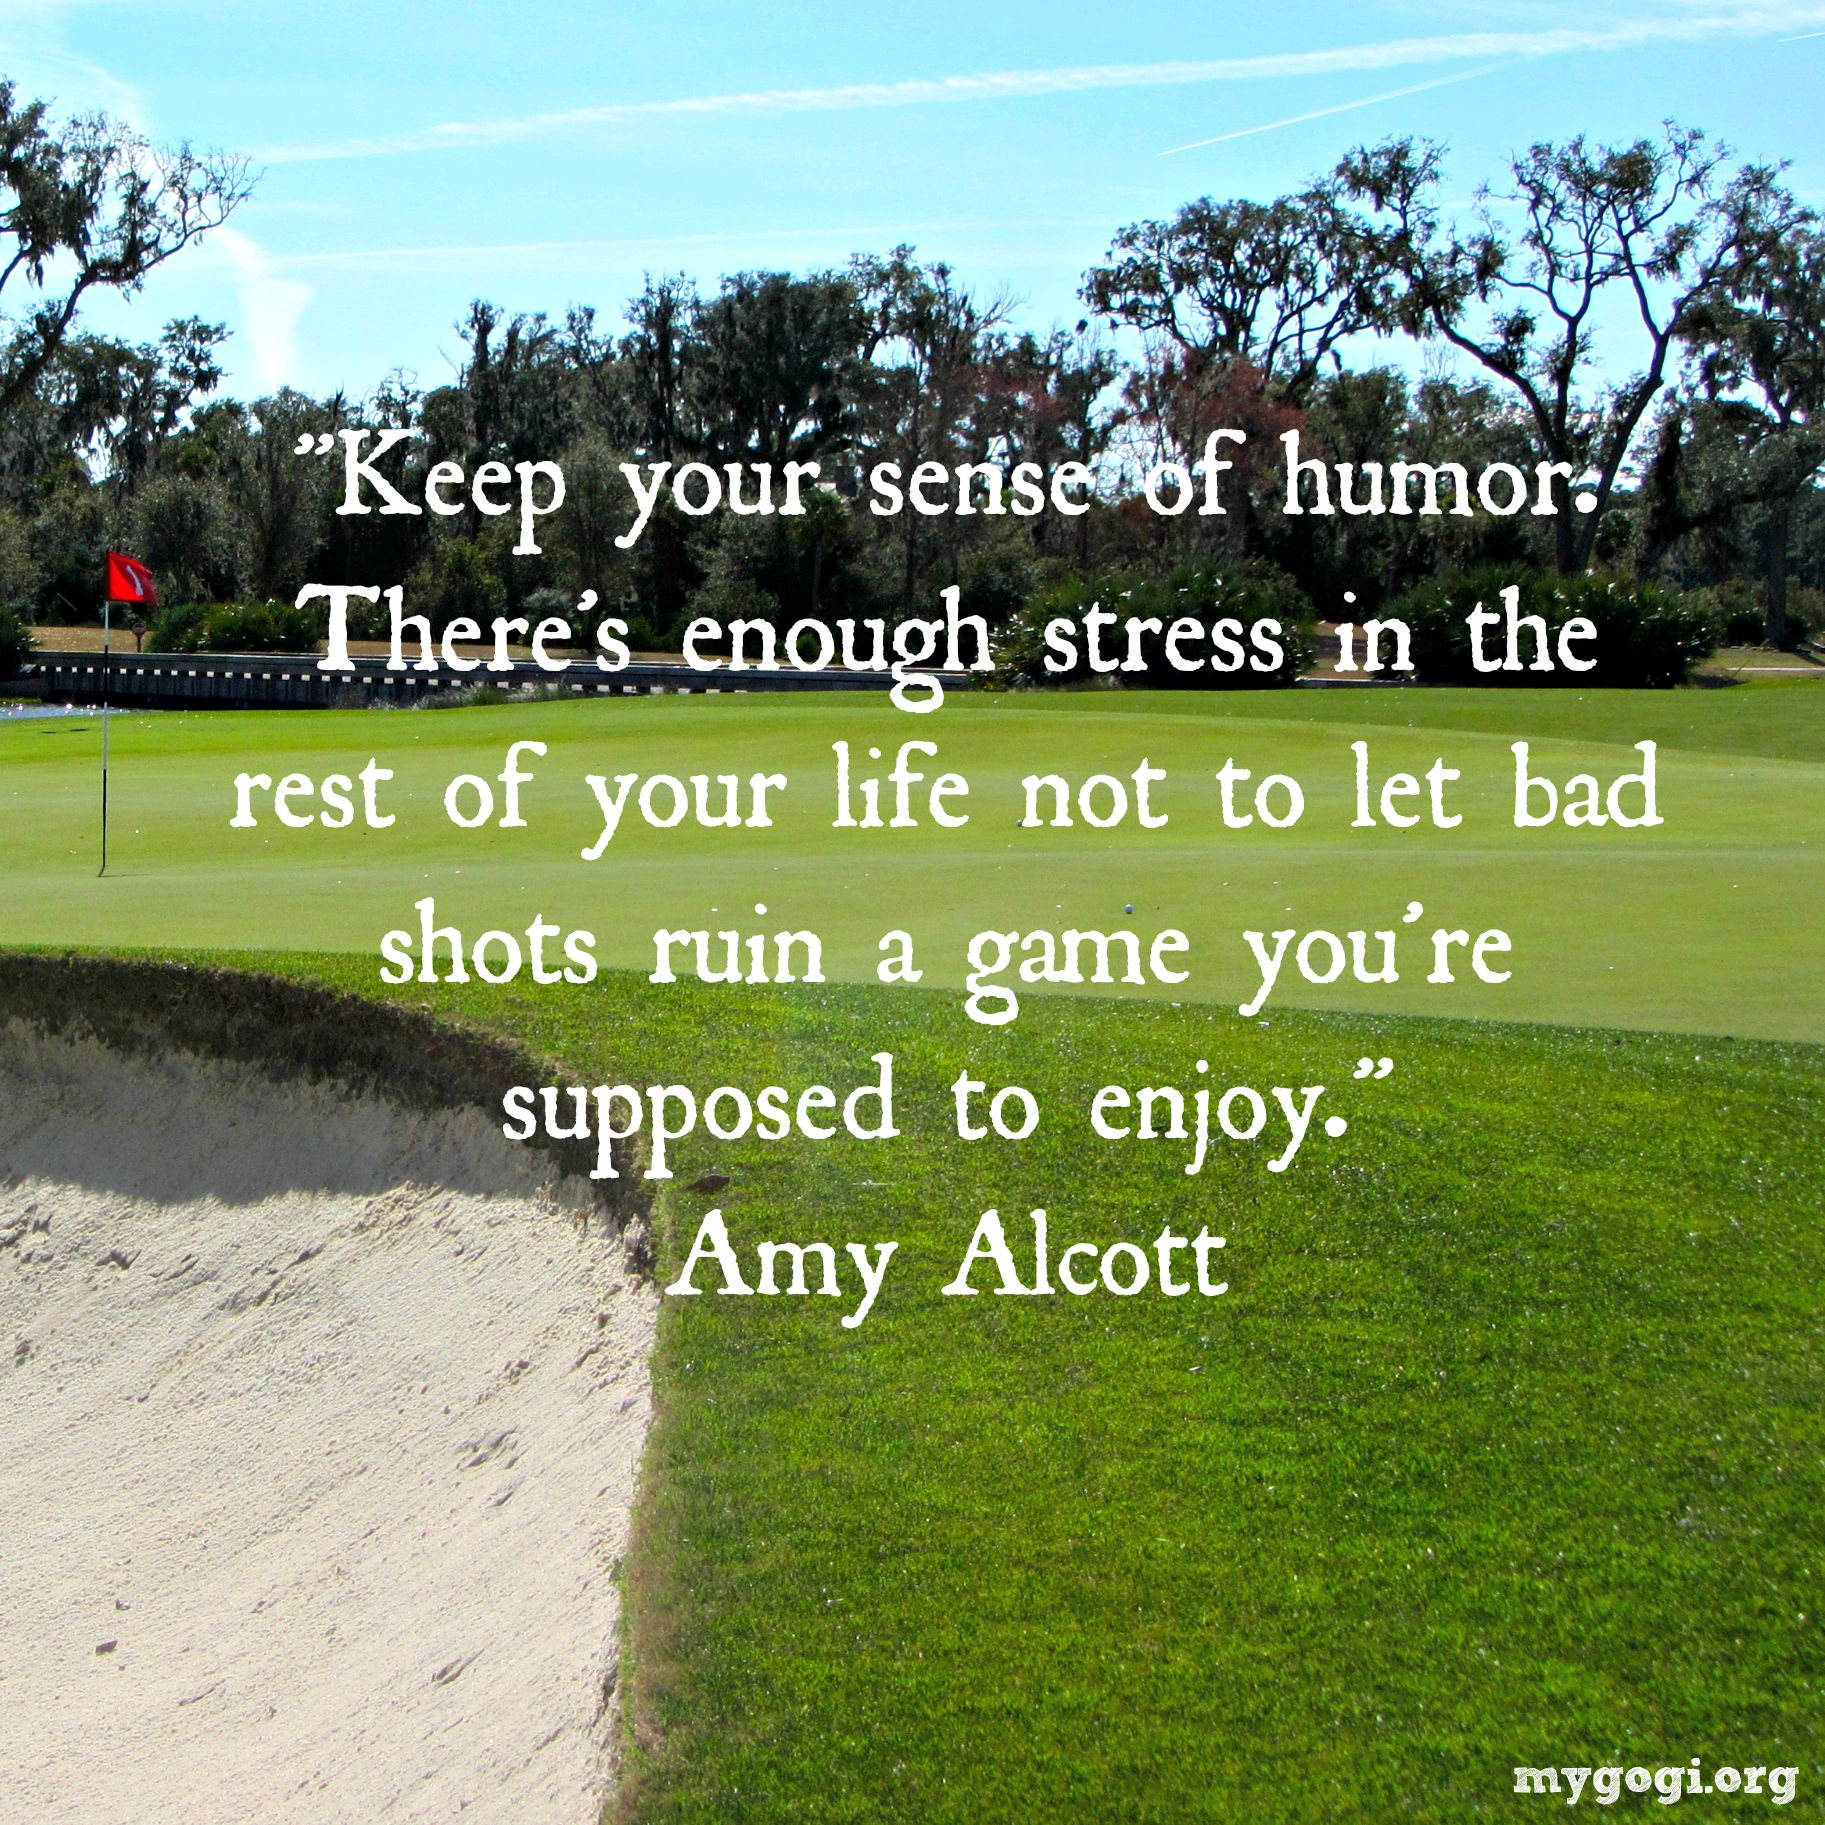 Golf And Life Quotes Remember At The End Of The Day It's Just A Gamegolfing